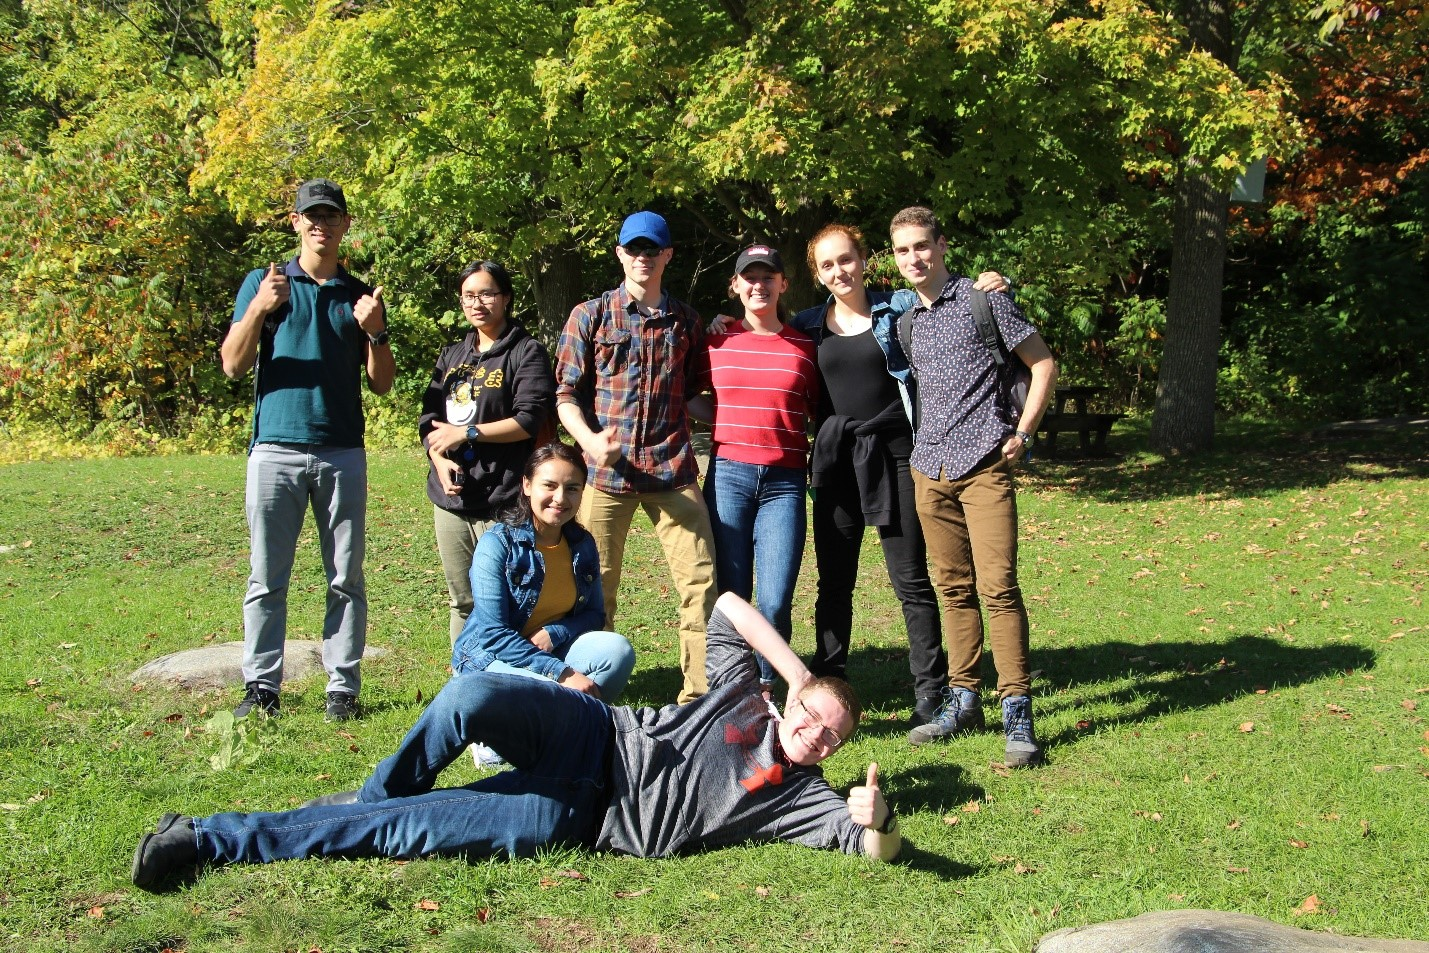 RMC Saint-Jean Campus Life Committee